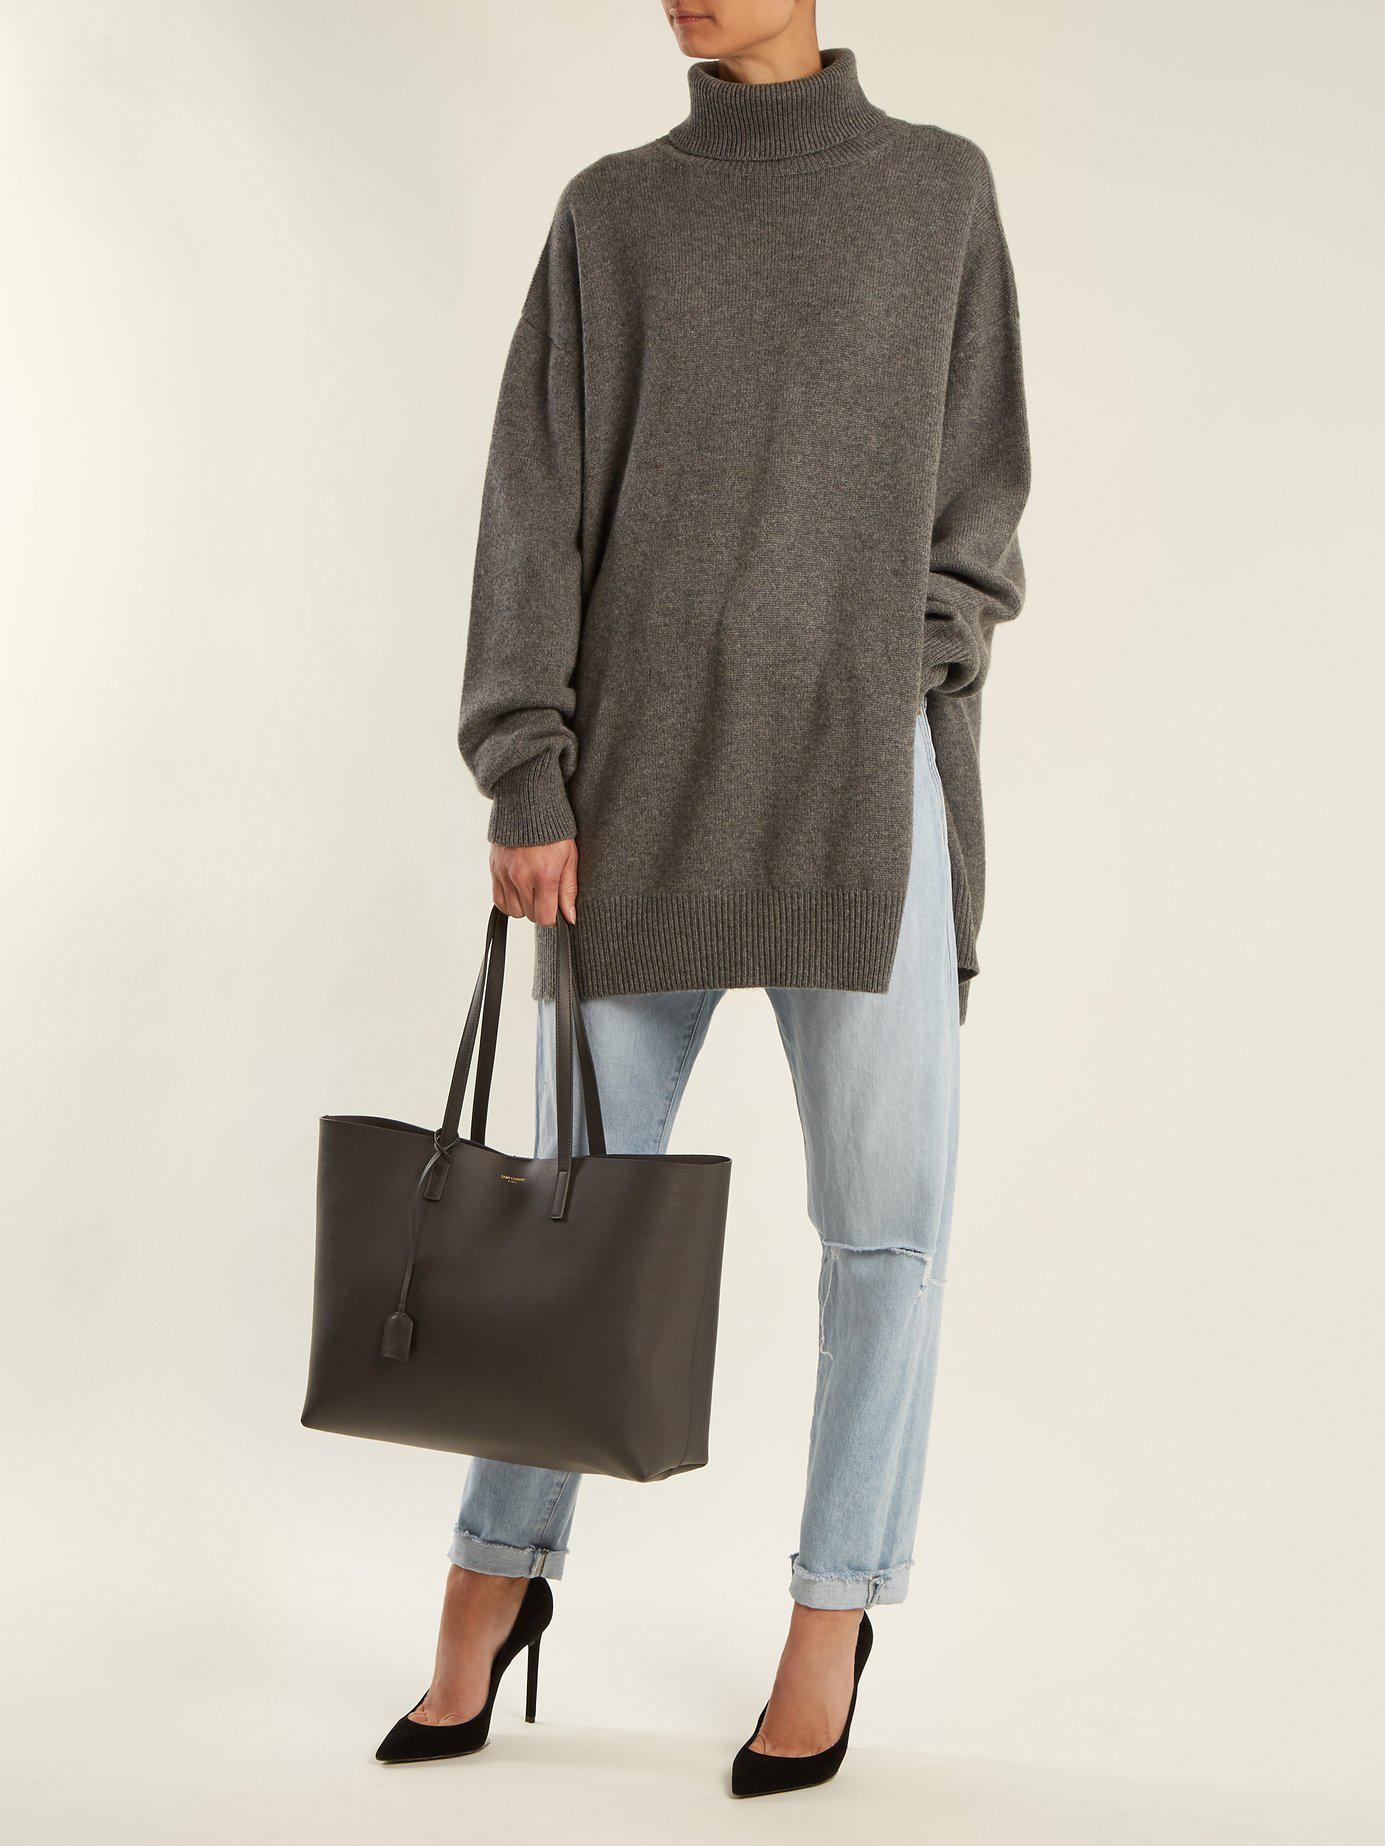 4e4e007f8523 Lyst - Saint Laurent East West Medium Leather Tote in Gray